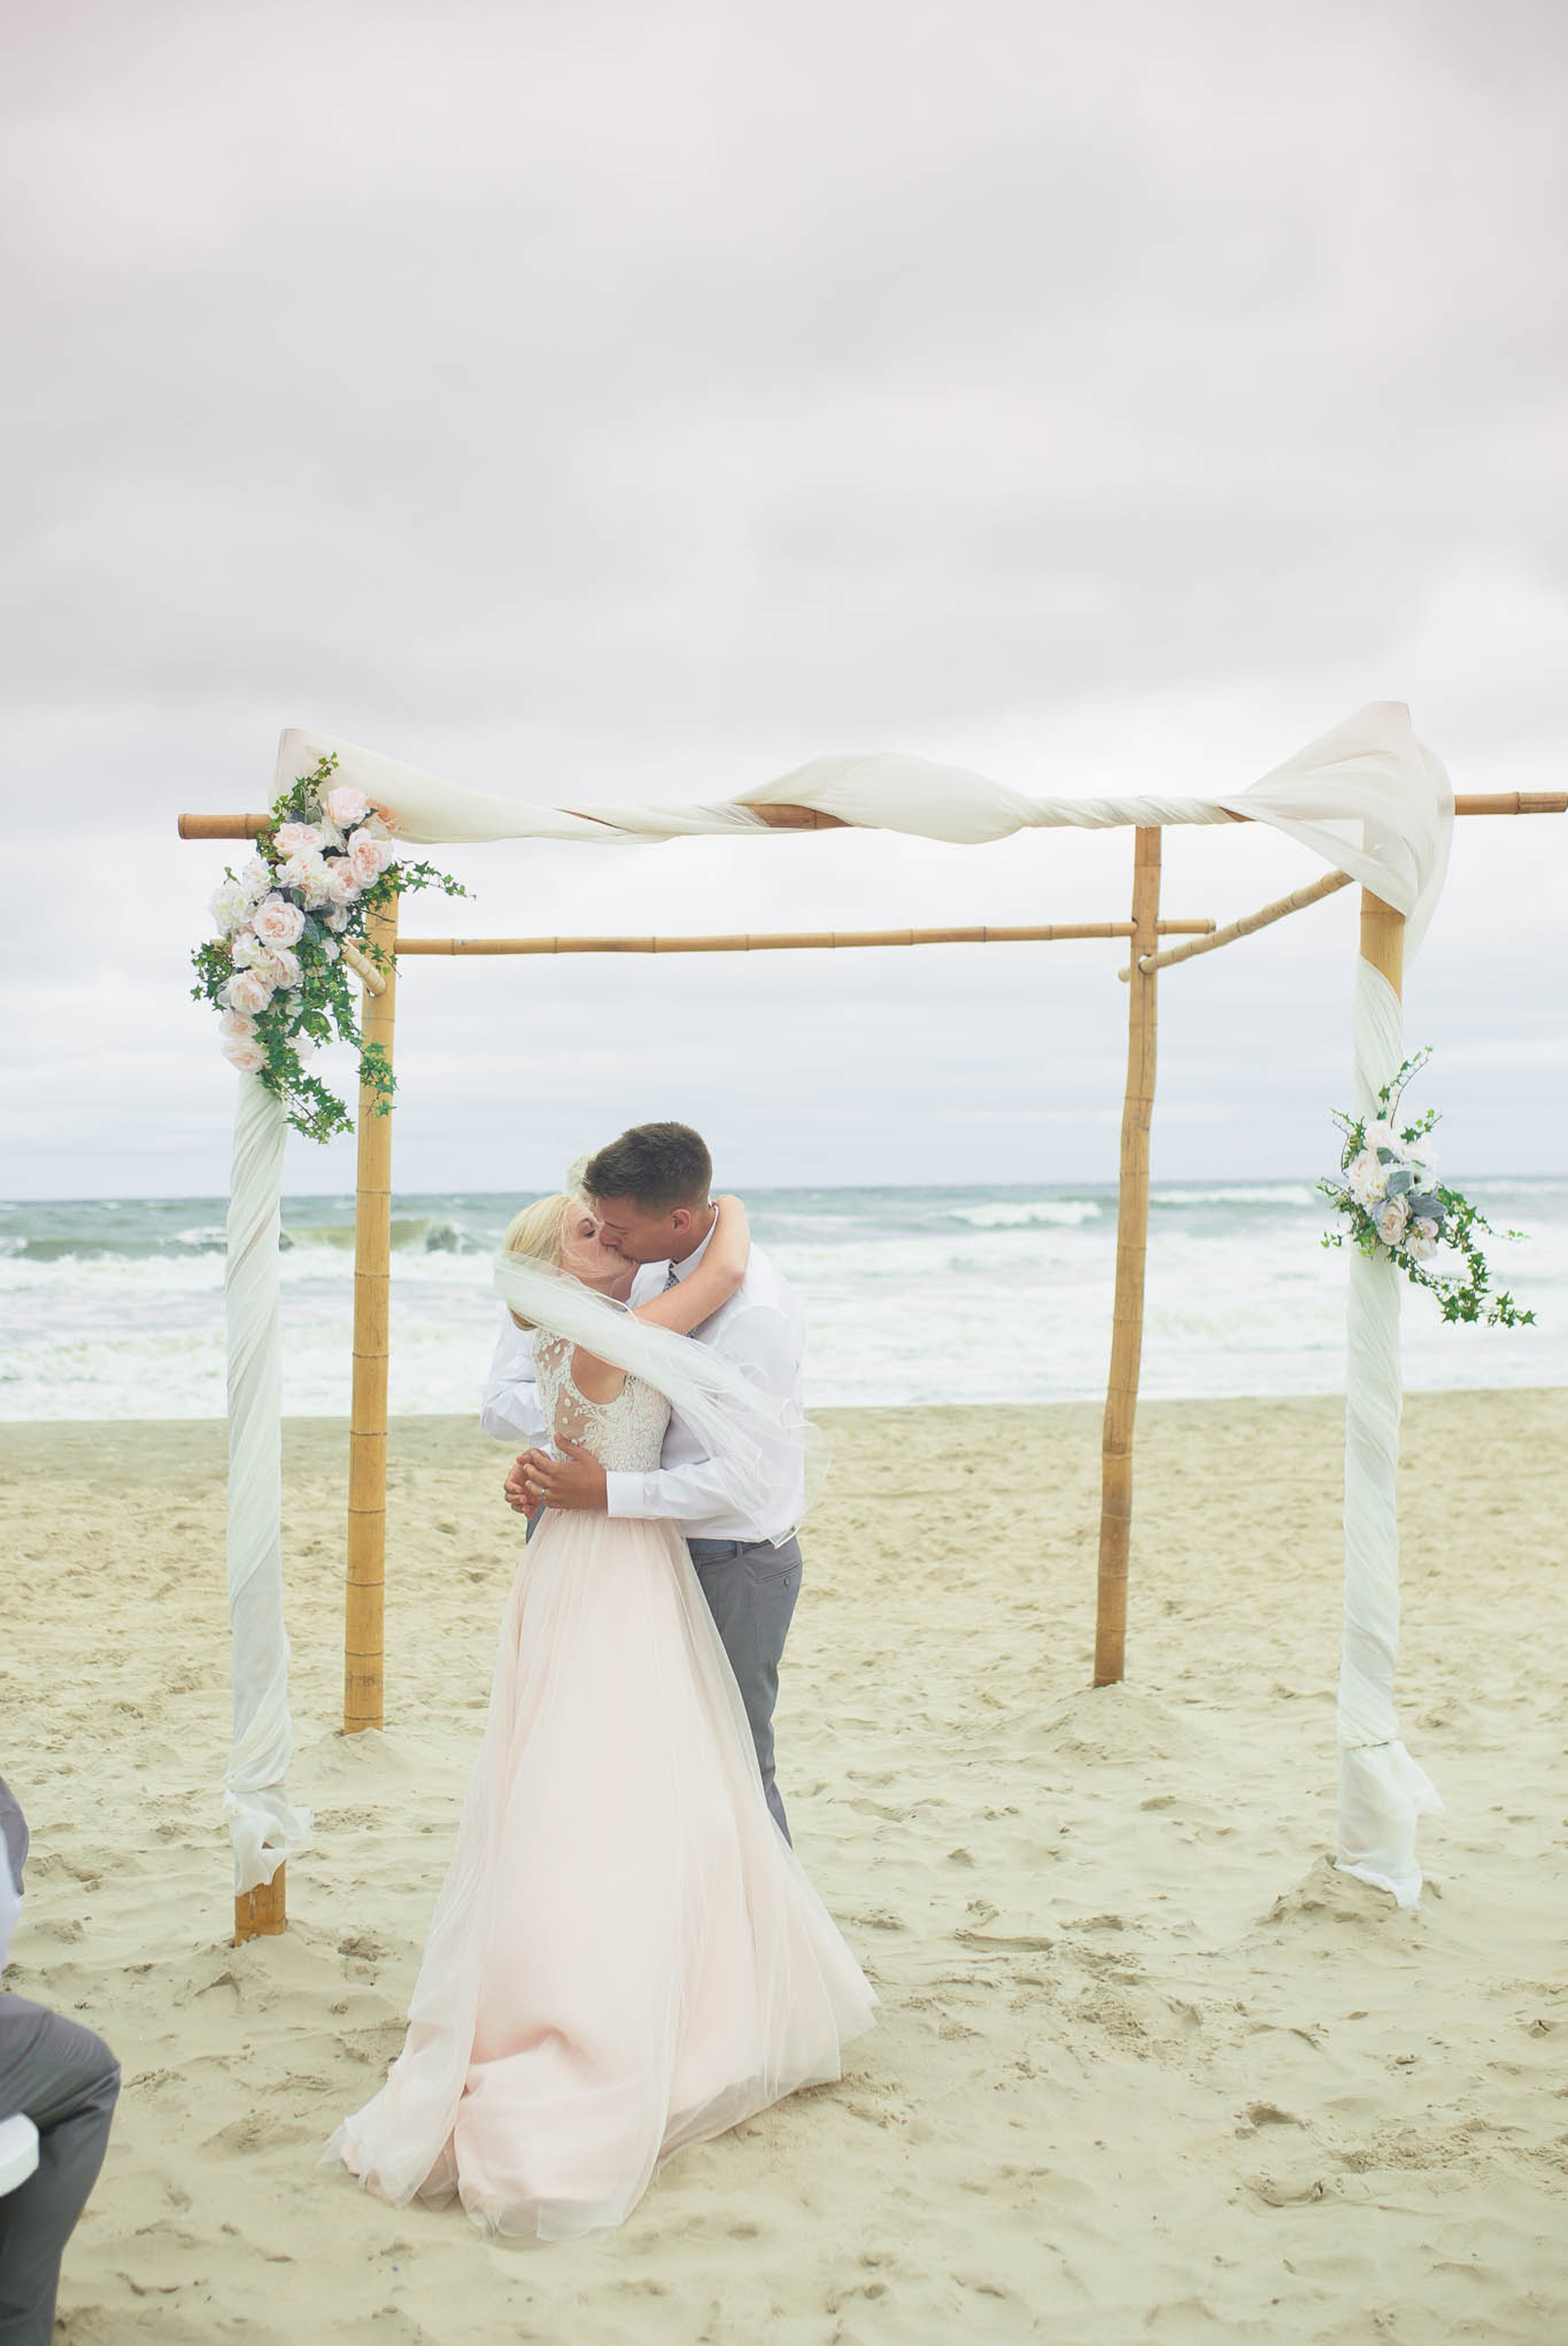 Wedding Photography at Pelicans Landing in Corolla, NC - Outer Banks North Carolina Wedding Photographer - Avery and Kirk Sanders